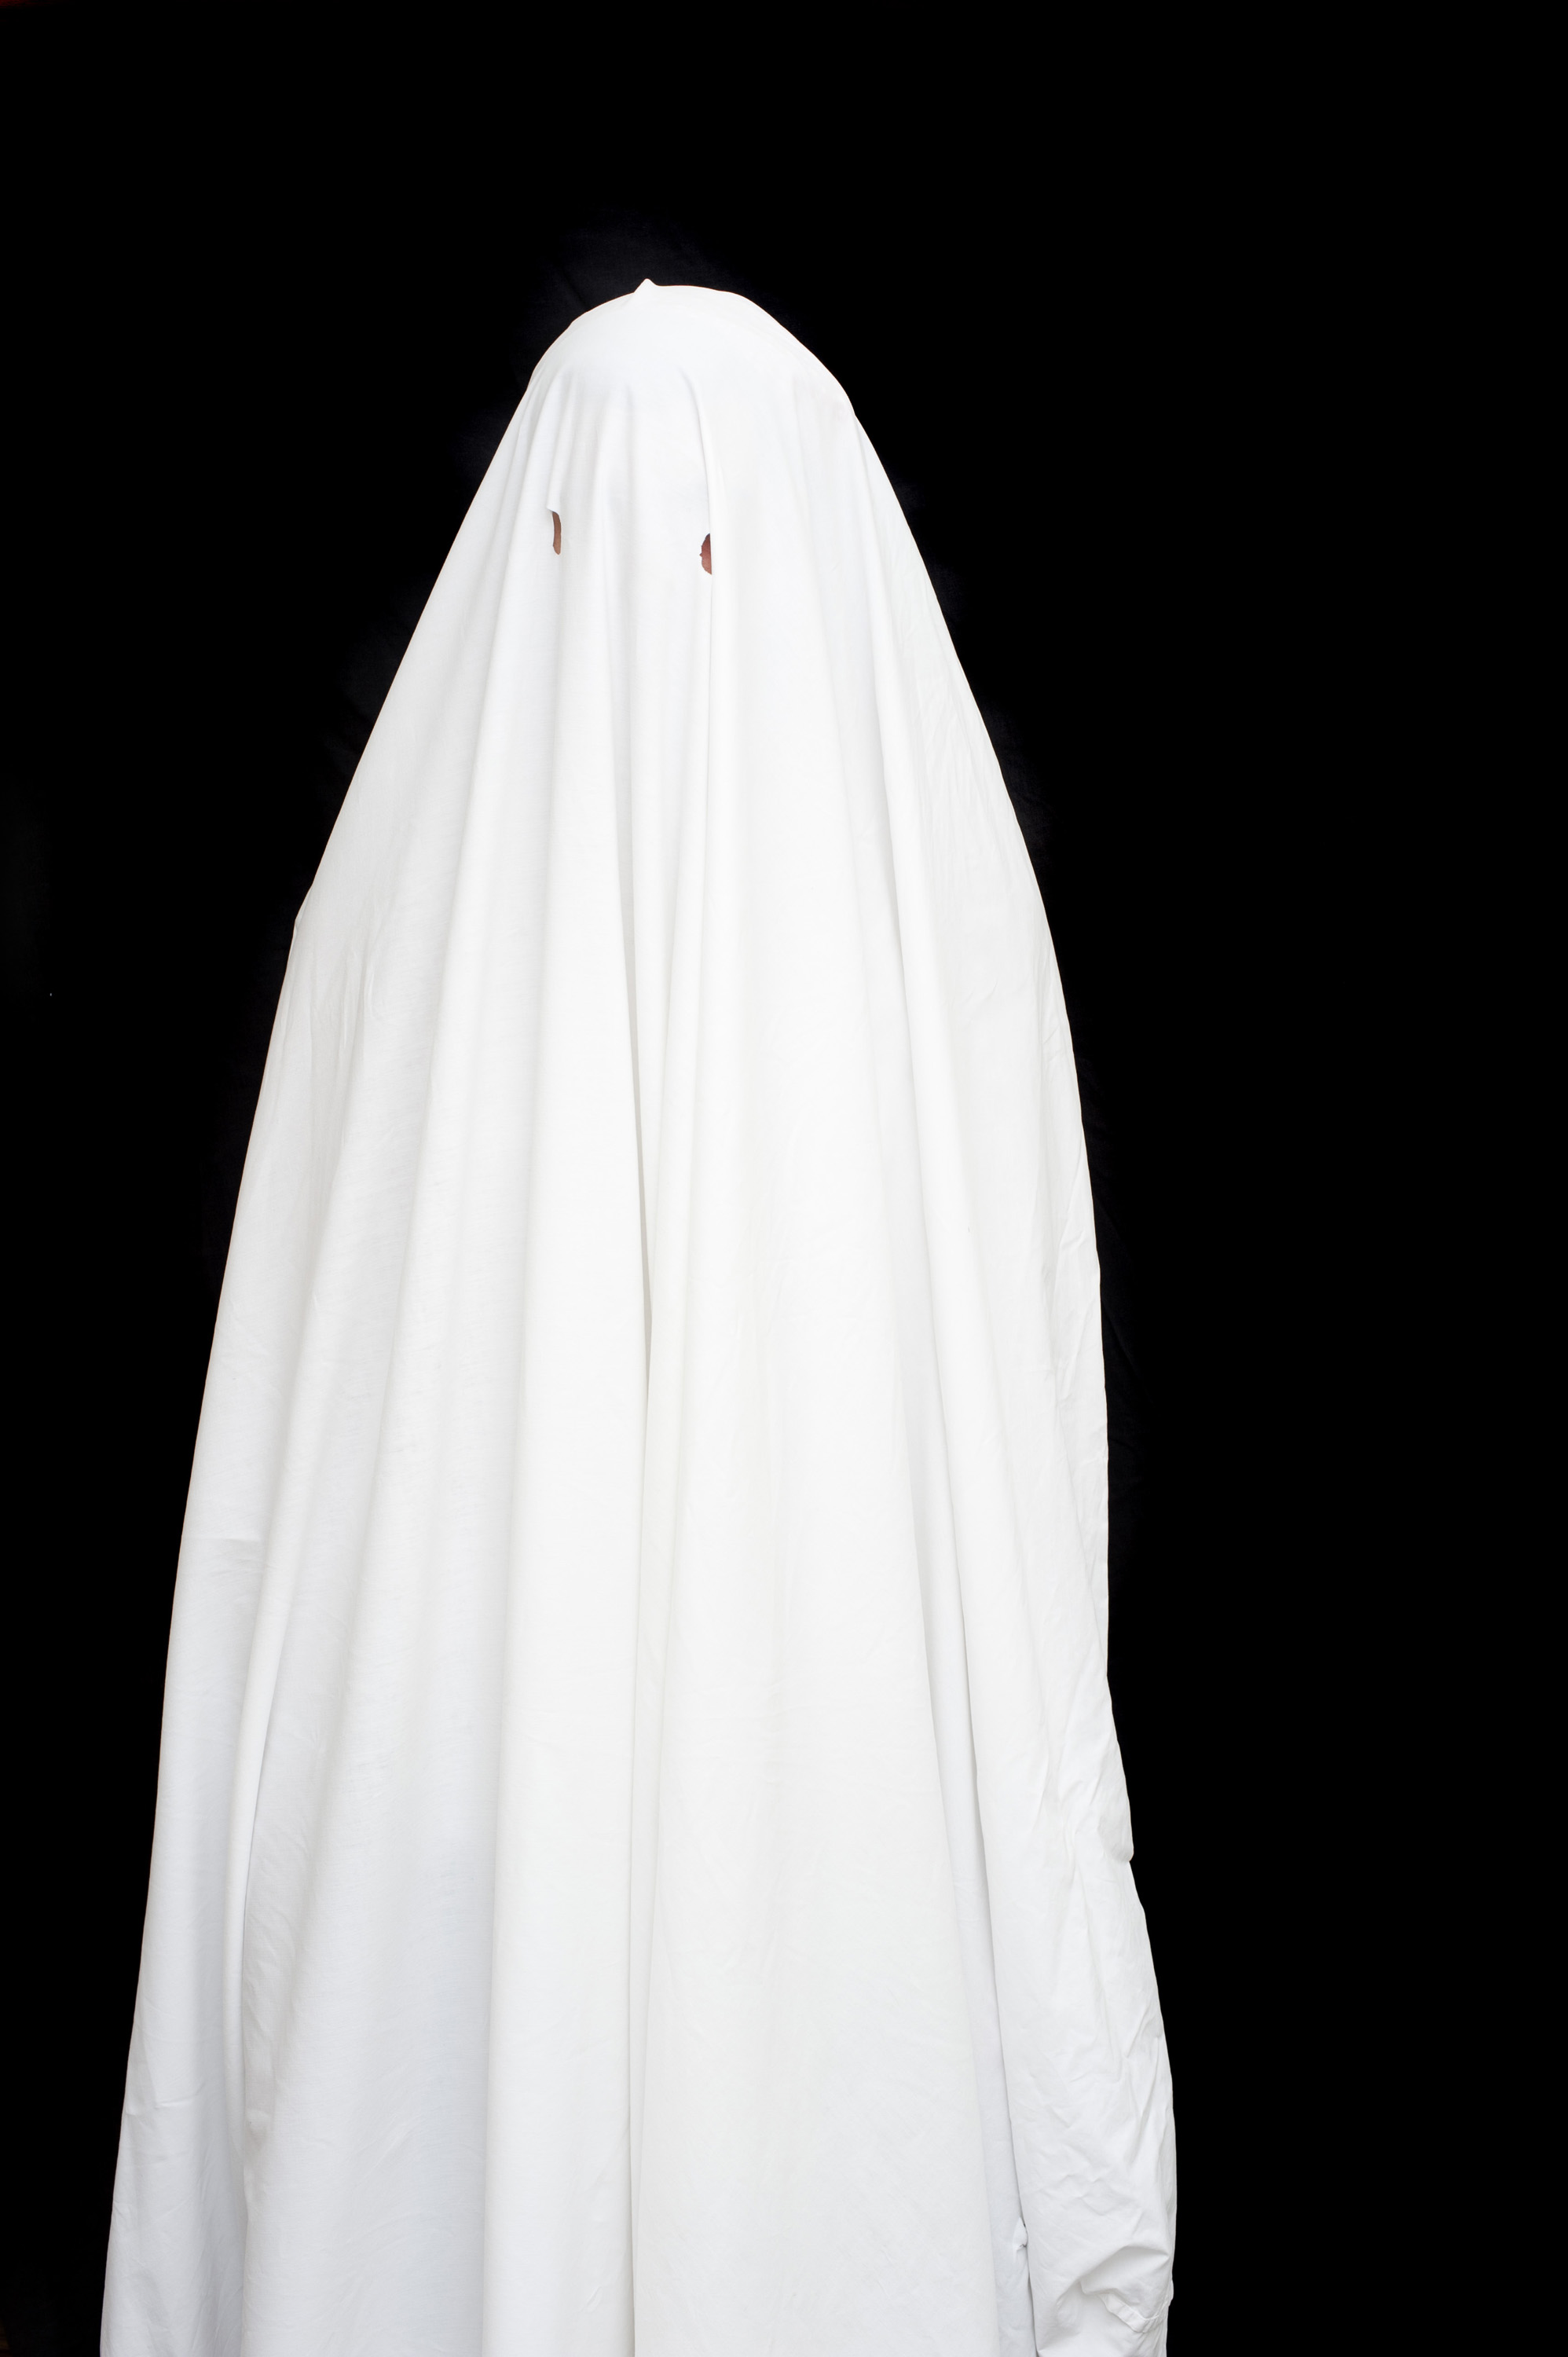 a bed sheet halloween ghost standing forlorn